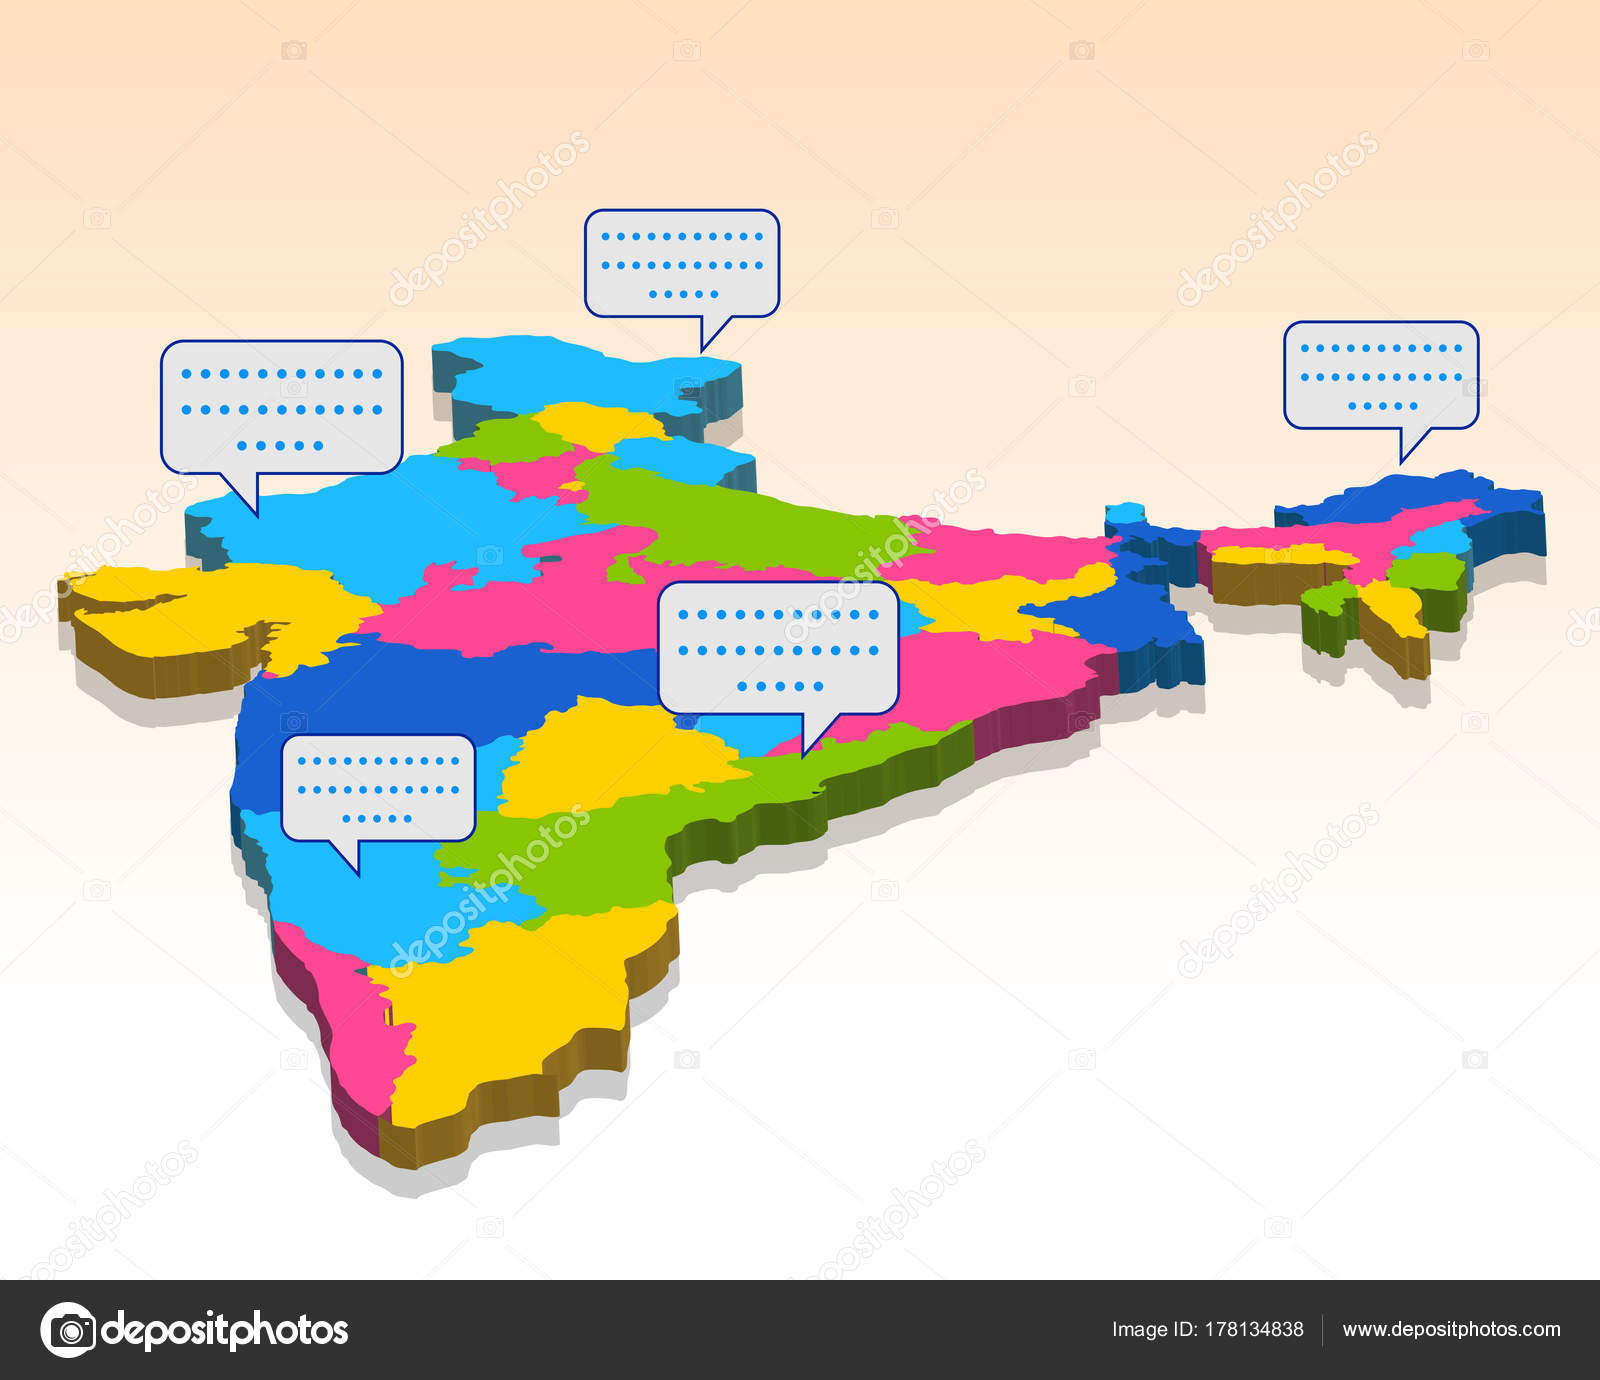 Map Of Asia 3d.Detailed 3d Map Of India Asia With All States And Country Boundary